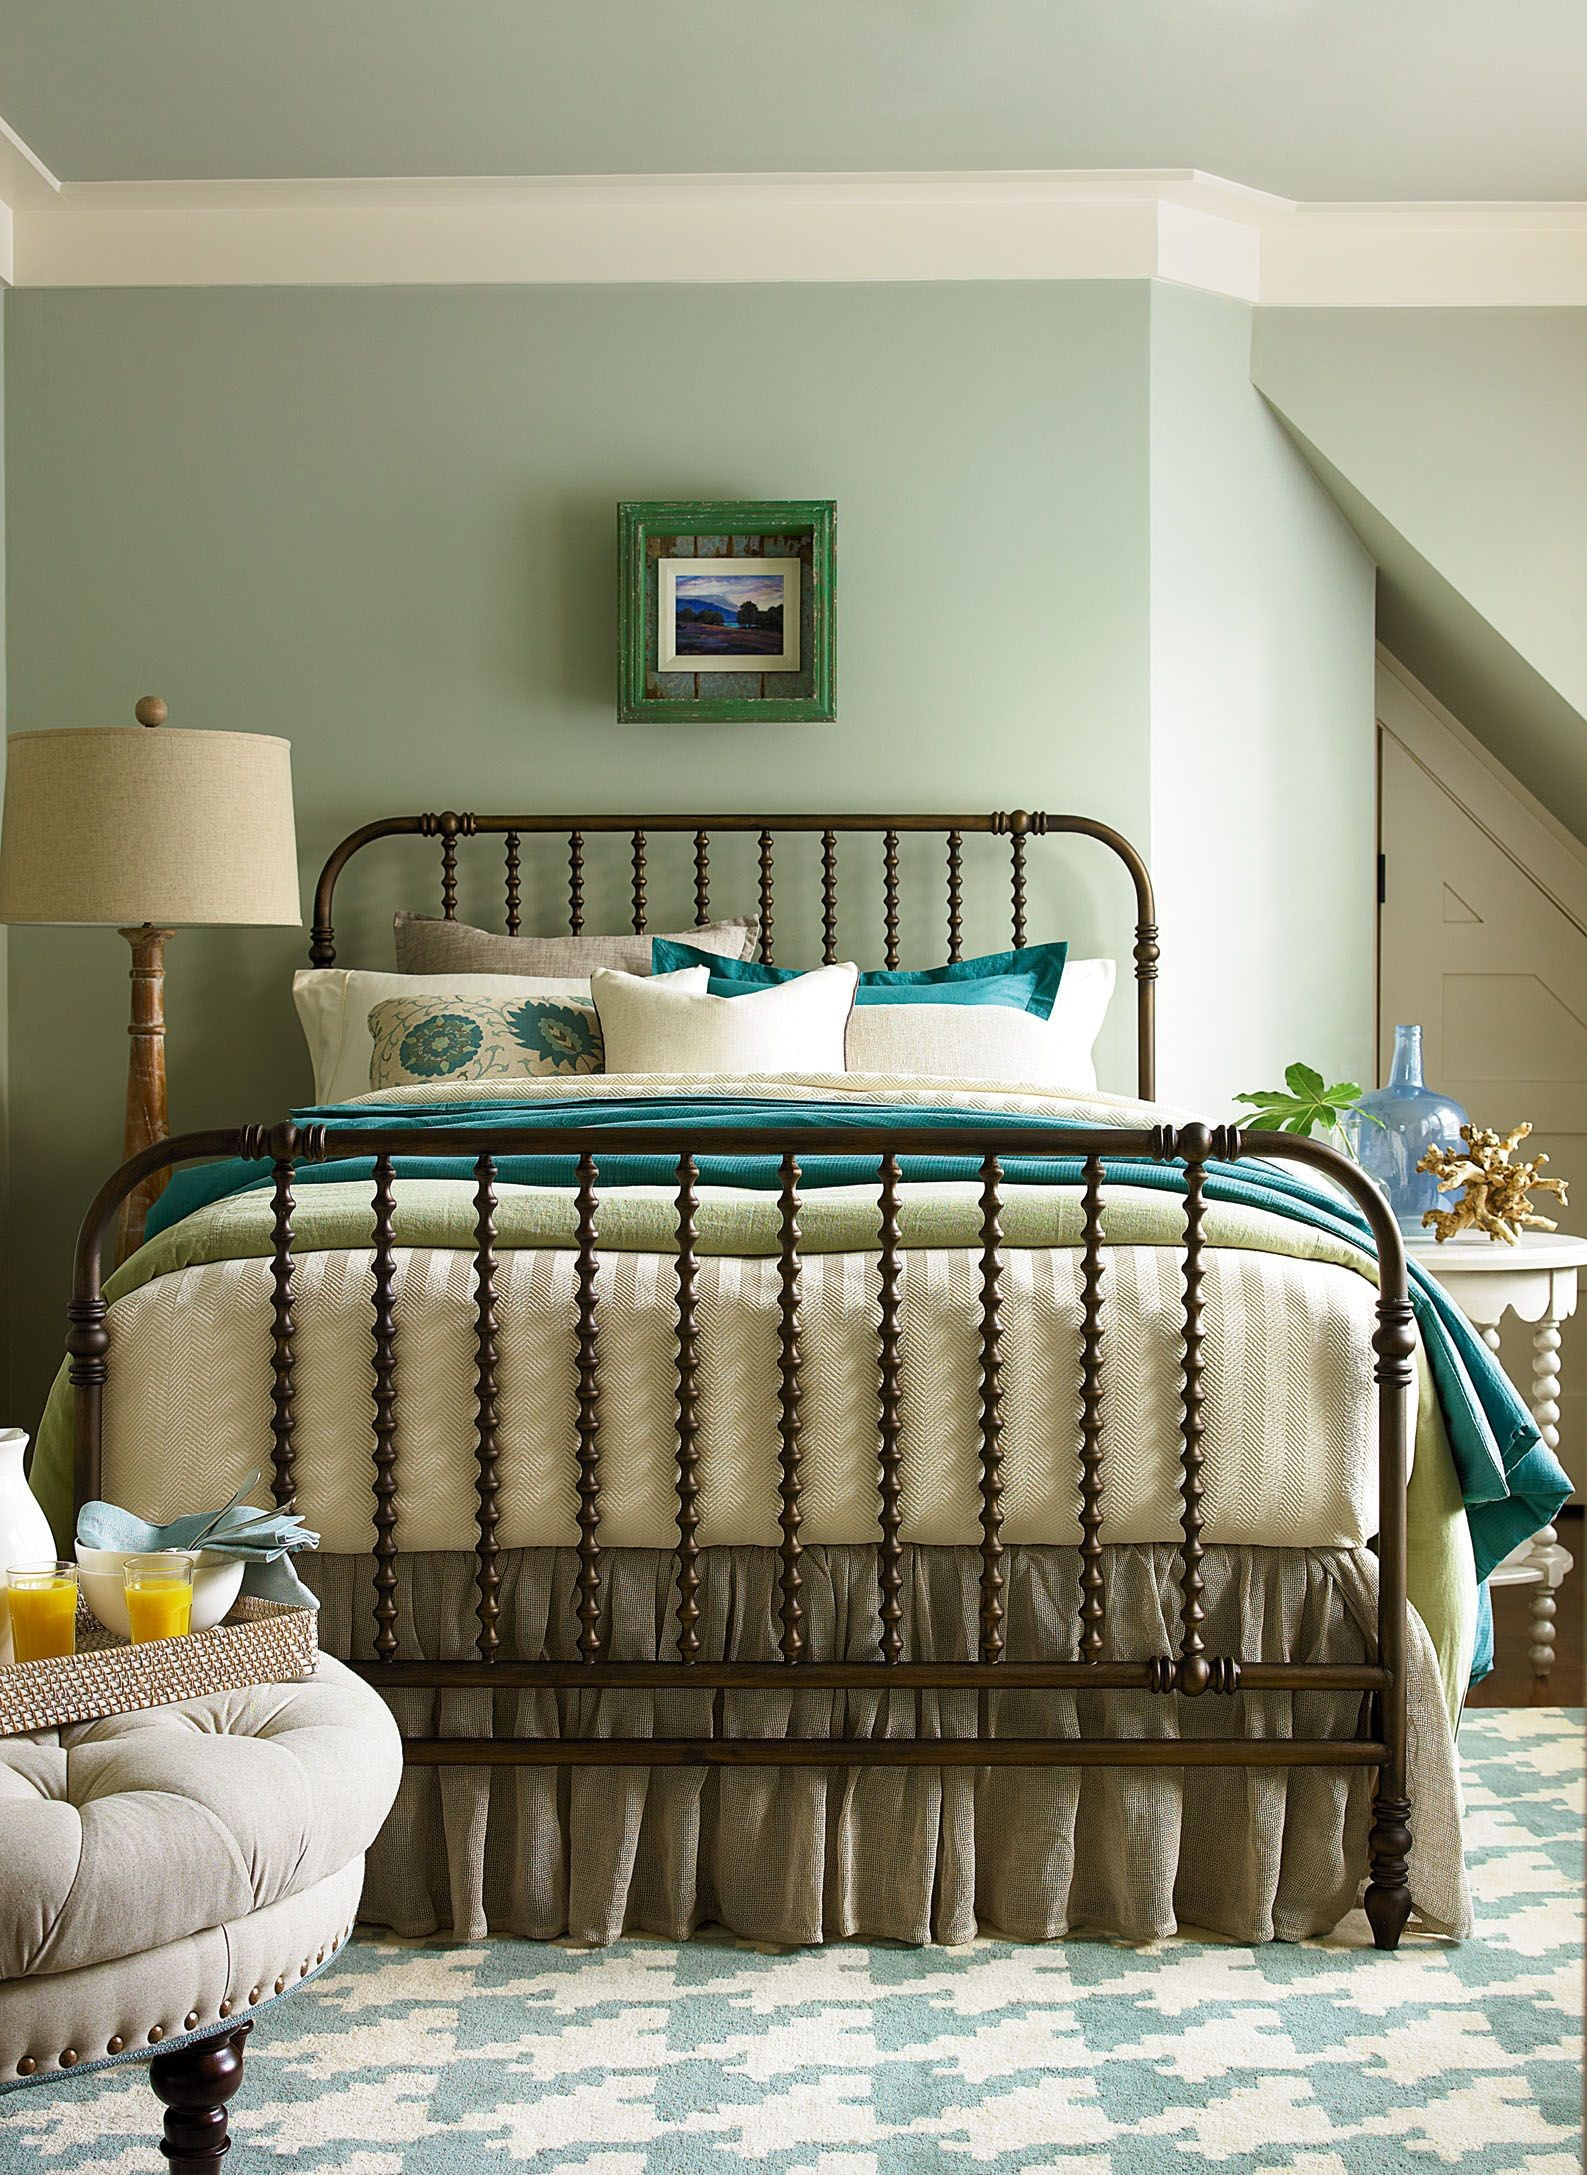 Riverhouse River Bank The Guest Room King Bed From